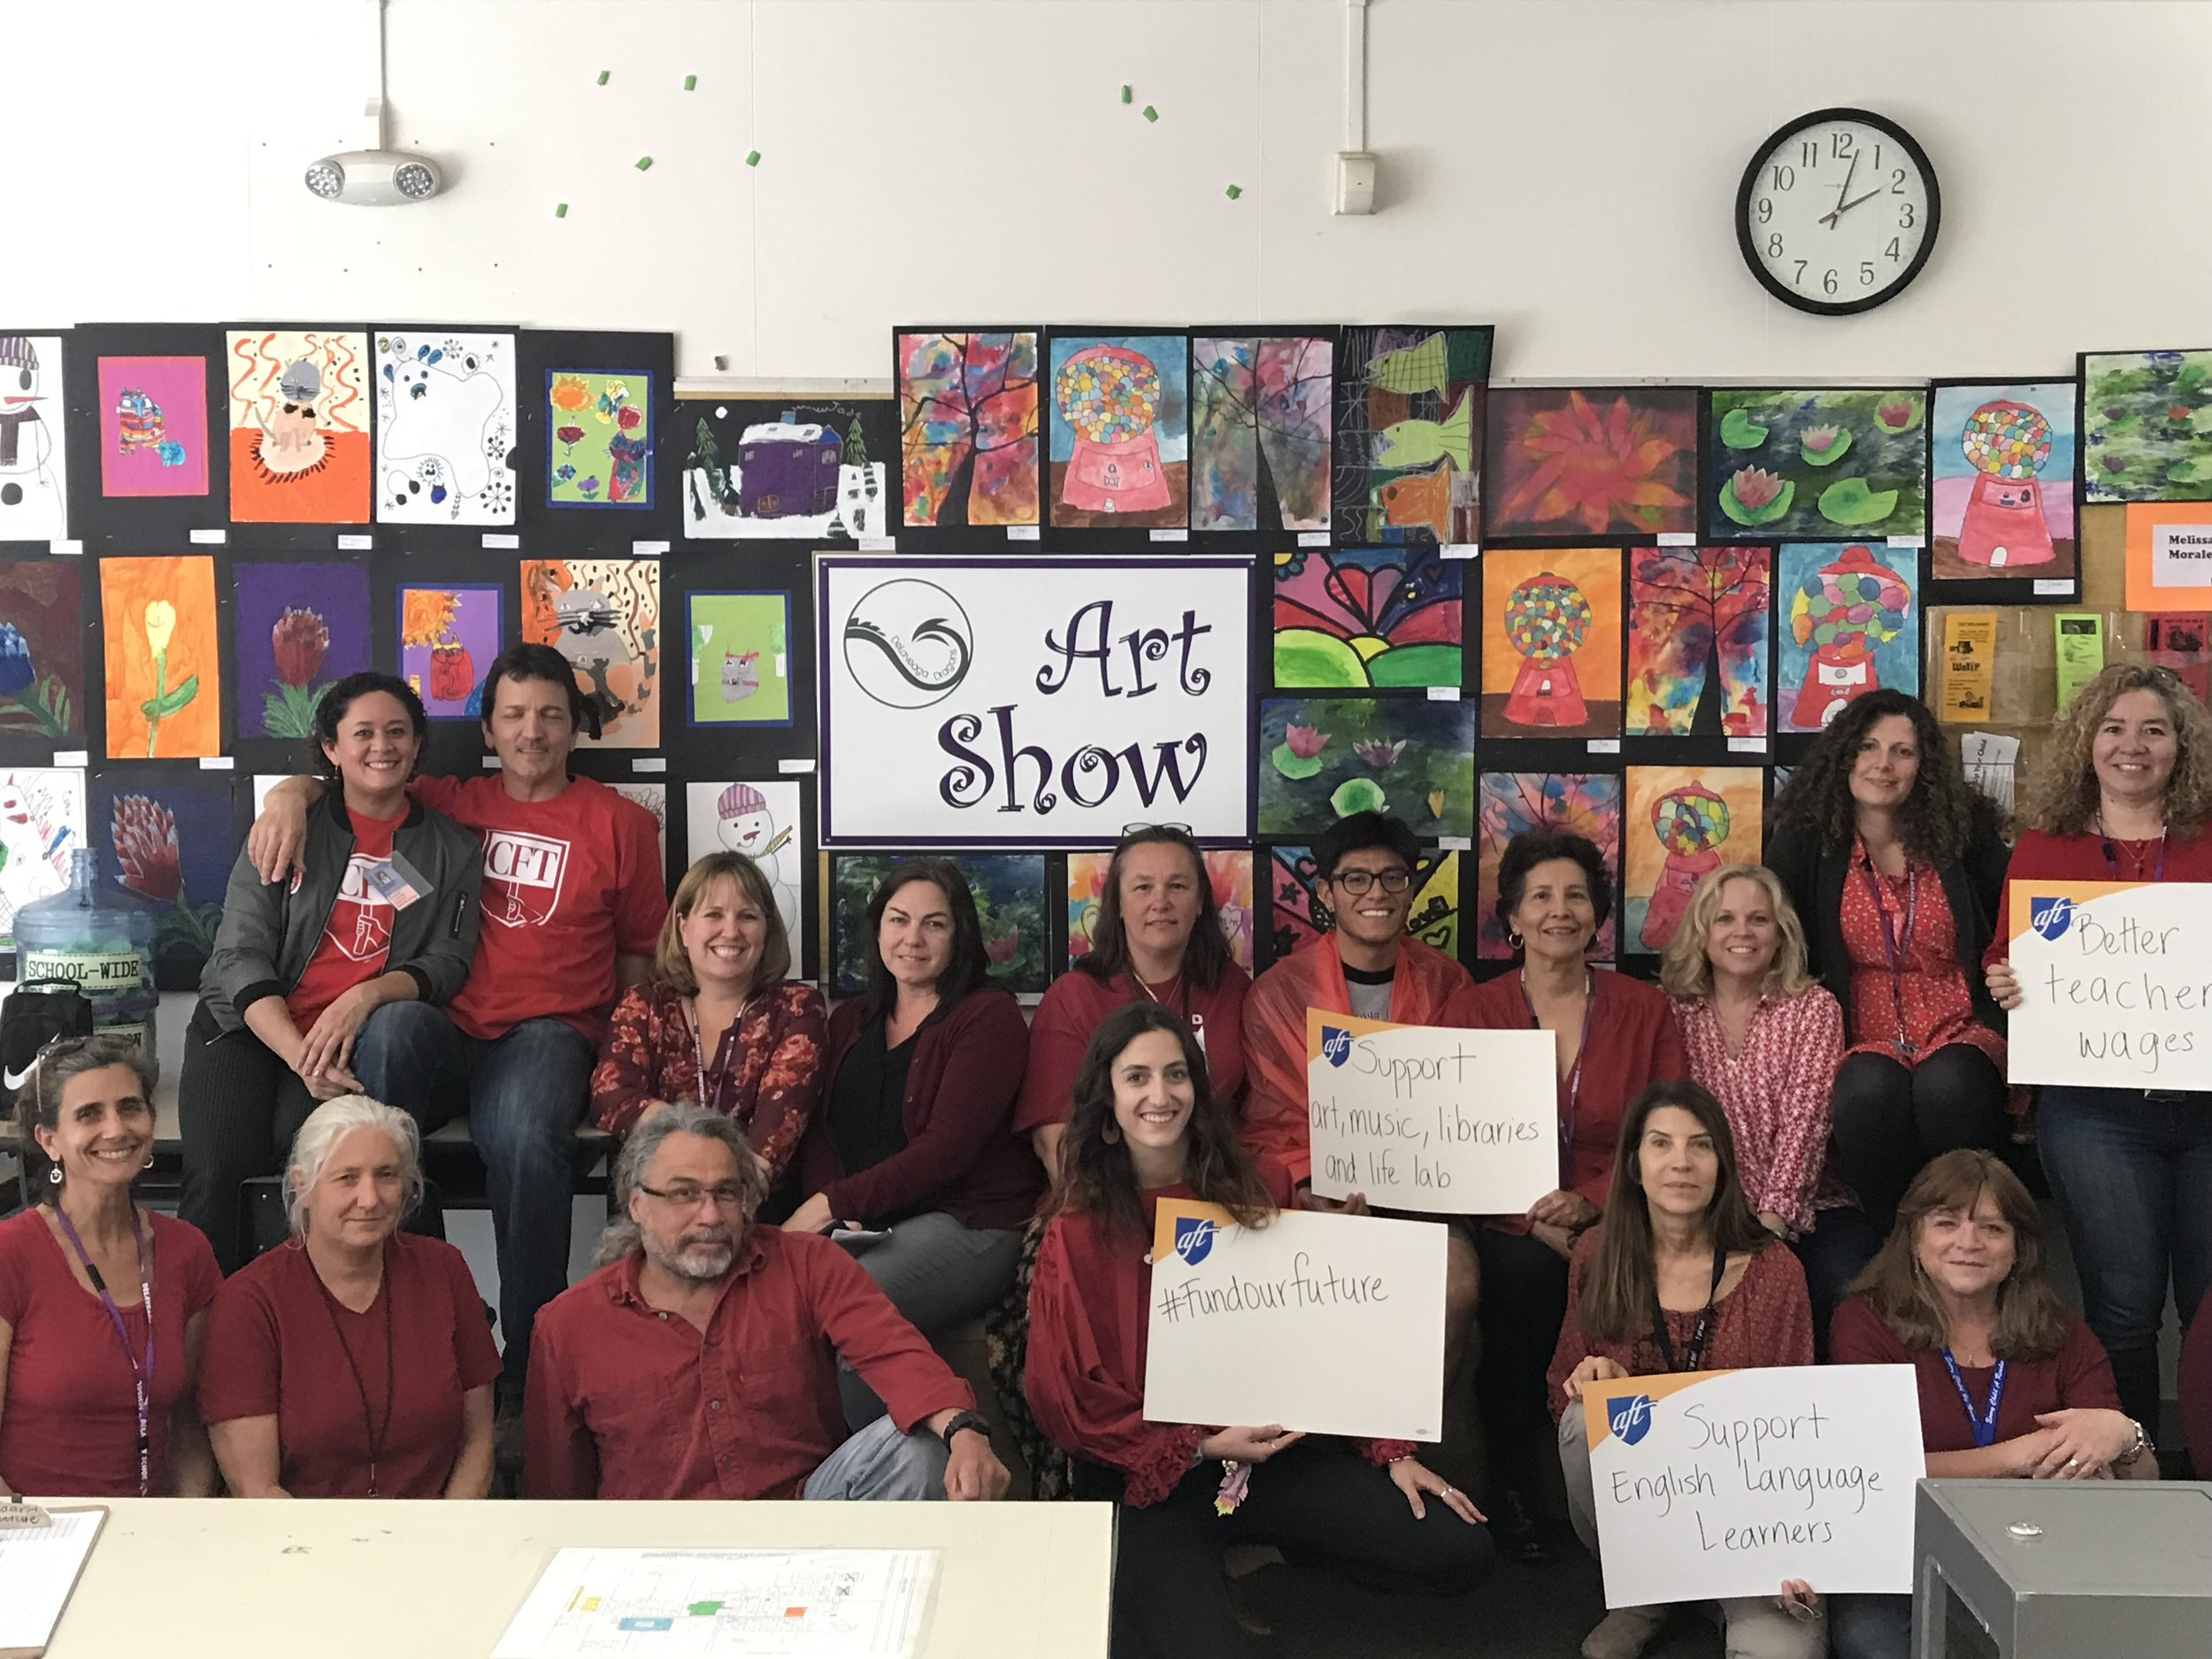 DELAVEAGA EDUCATORS ROCKIN' THEIR #REDFORED WE NEED FULL FUNDING FOR OUR PUBLIC SCHOOLS NOW!